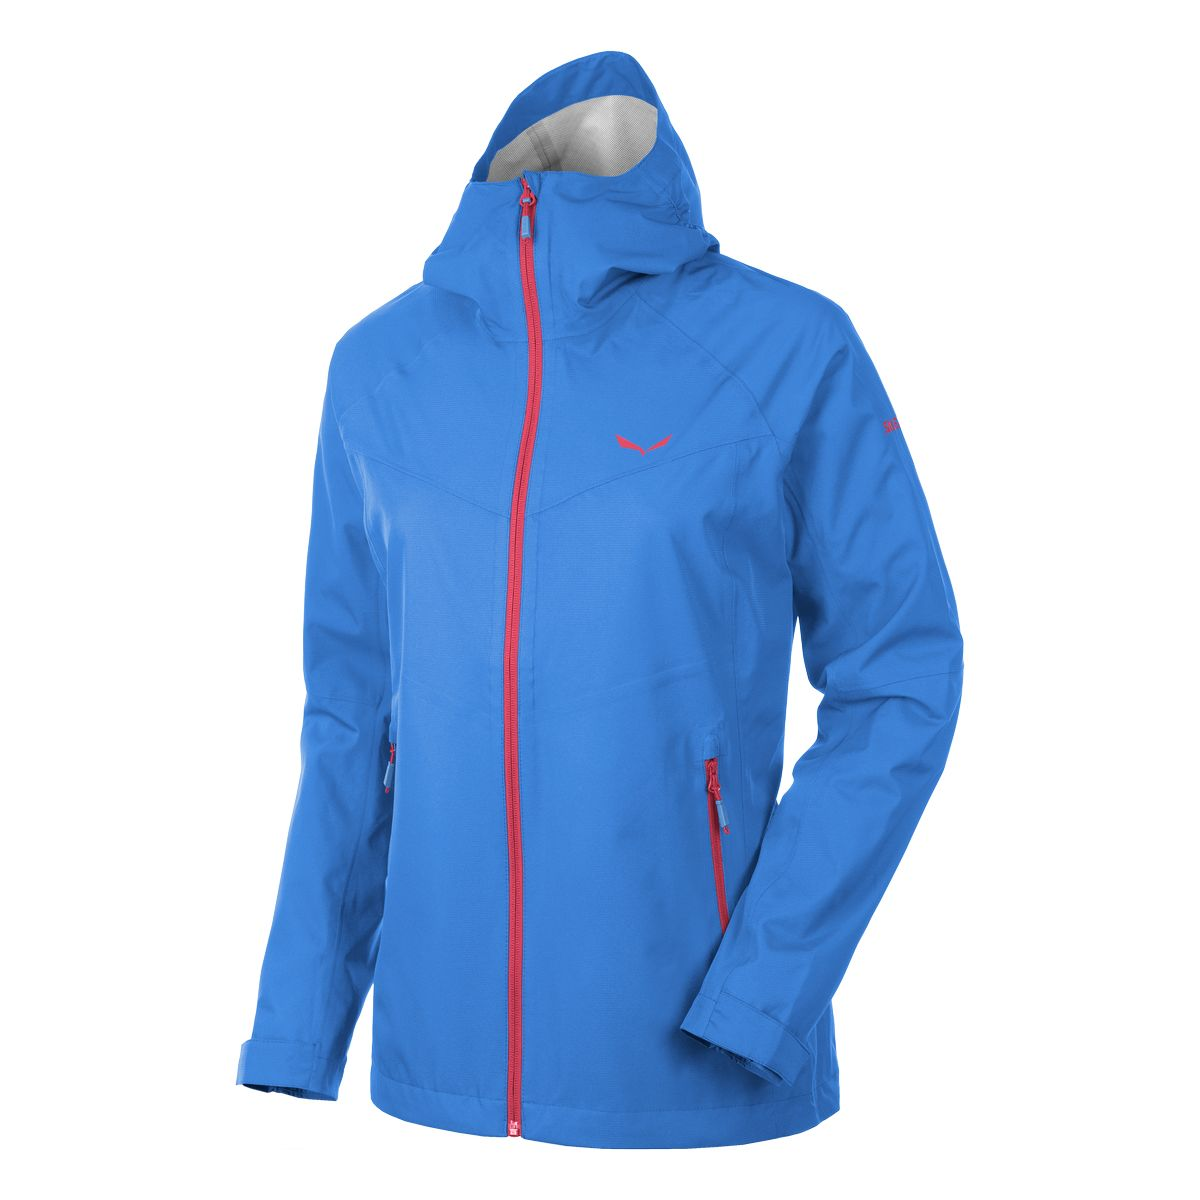 Куртка для активного отдыха Salewa 2016 PUEZ (AQUA 3) PTX W JKT royal blue/1780